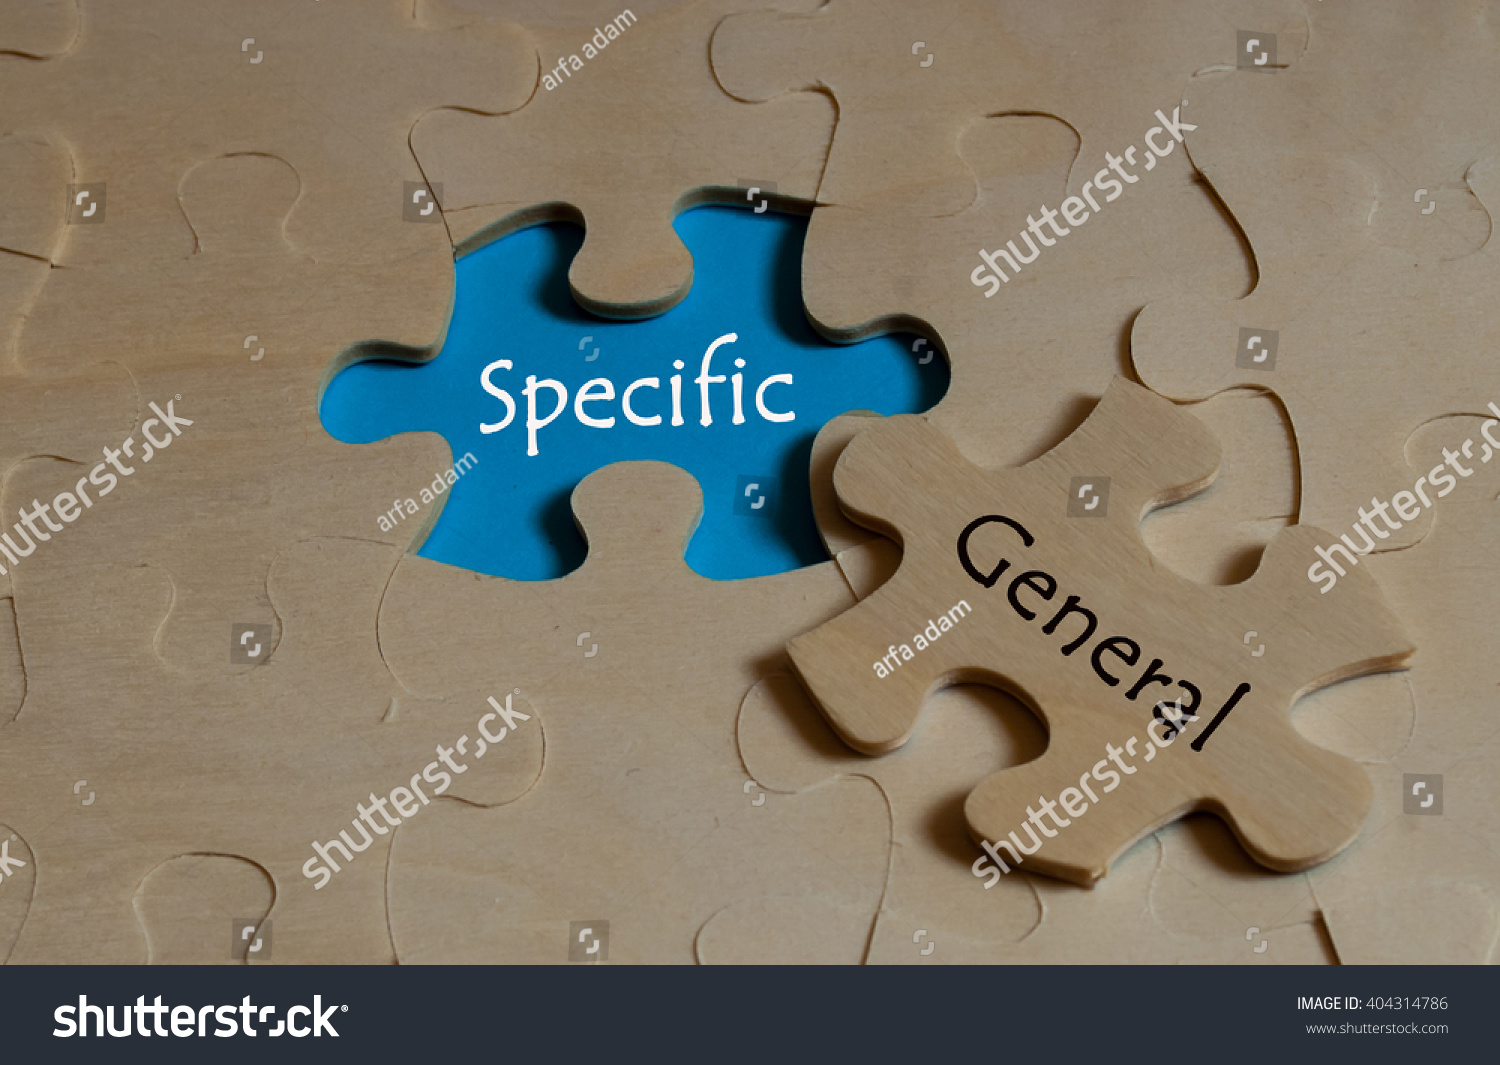 Puzzle antonym concept specific versus general stock photo puzzle with antonym concept of specific versus general biocorpaavc